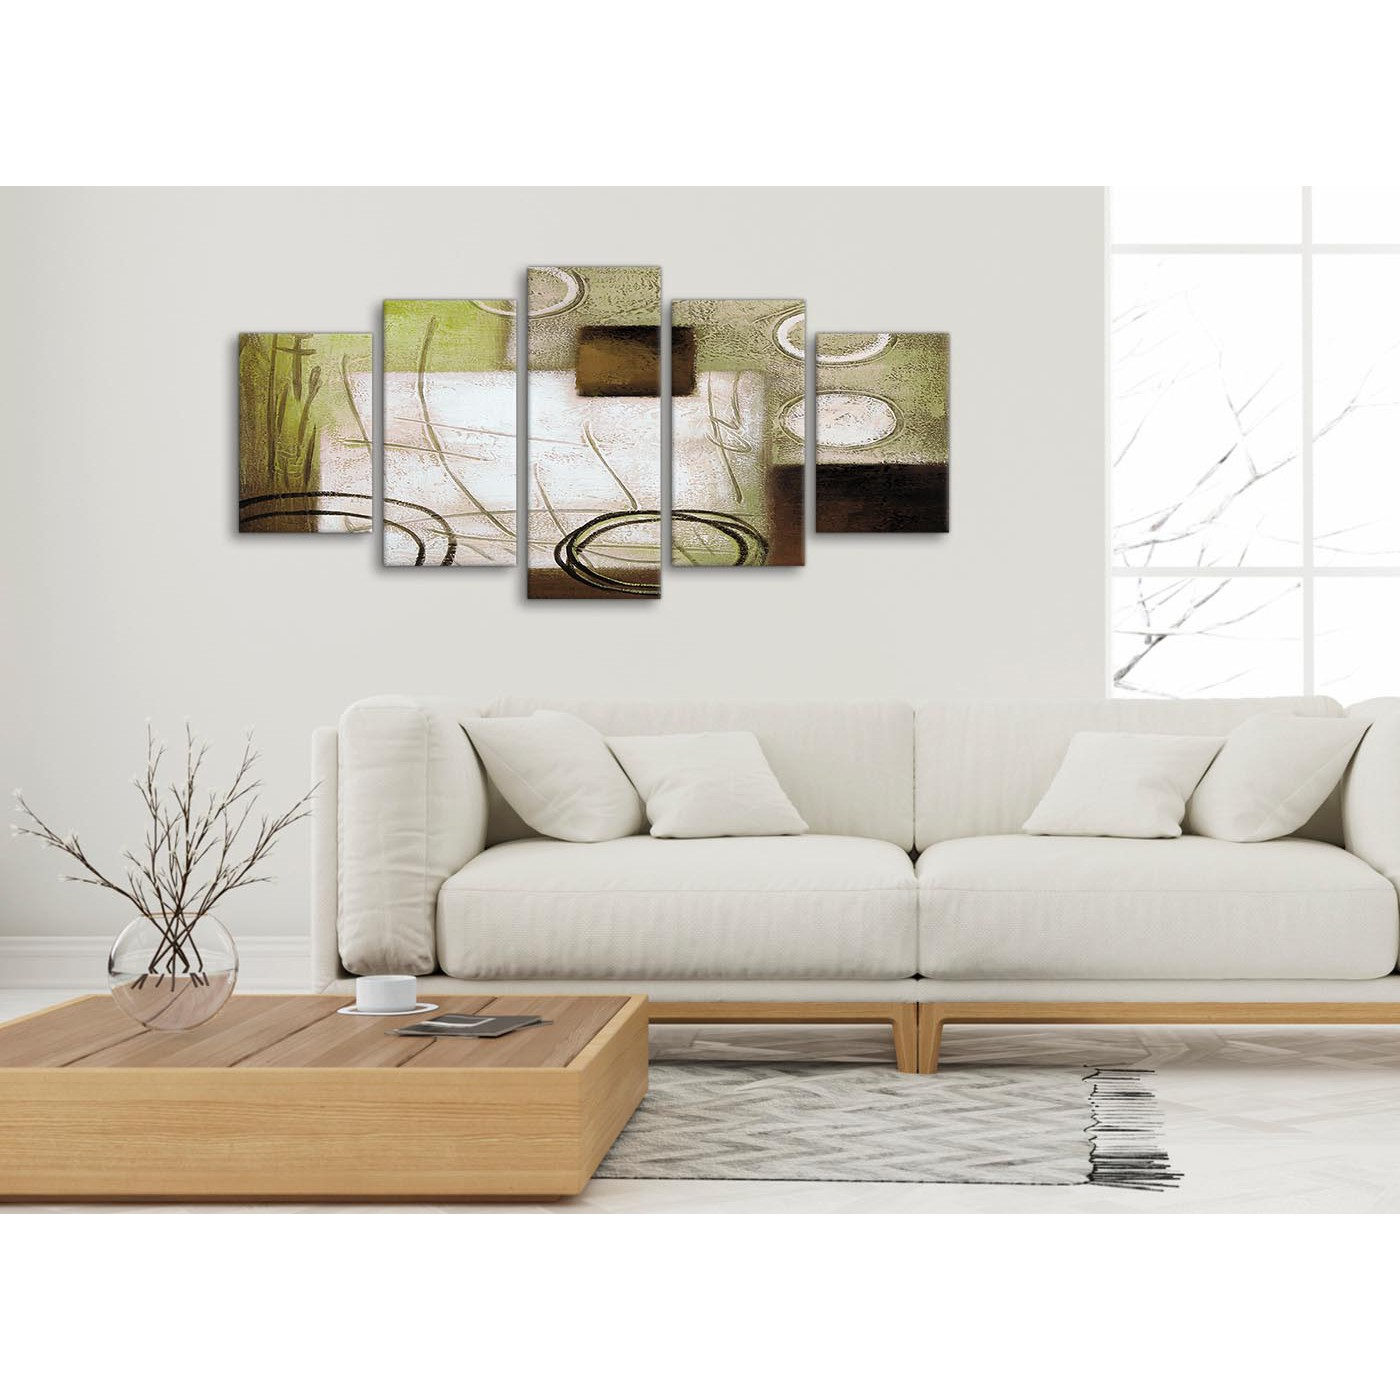 5 Panel Brown Green Painting Abstract Living Room Canvas Wall Art ...